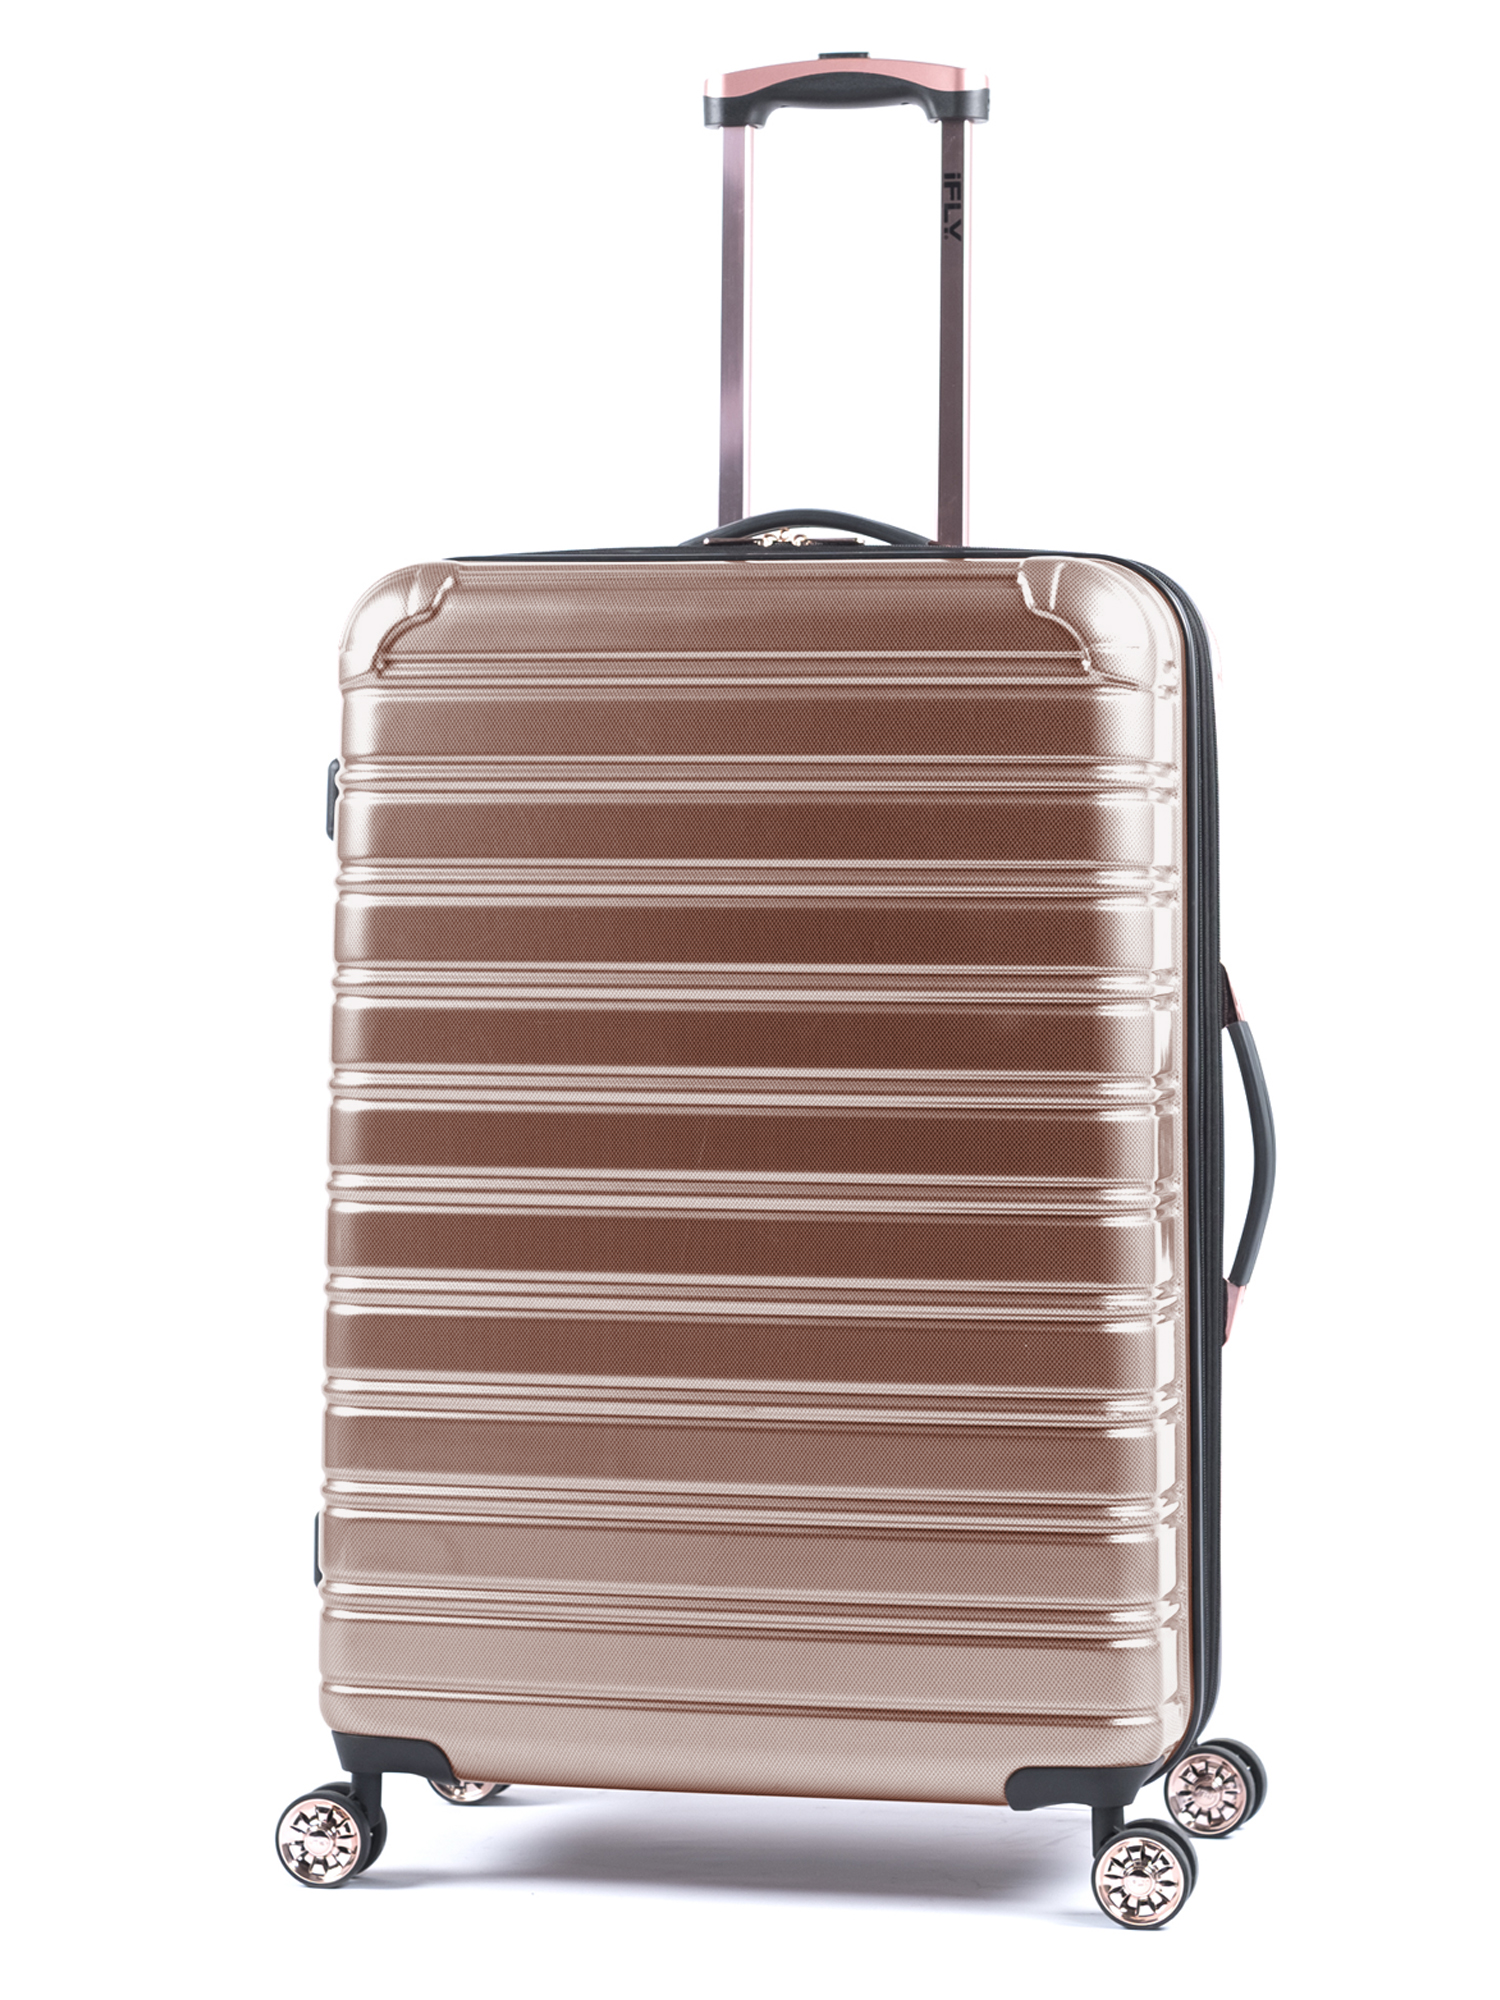 "iFLY Hard Sided Fibertech 28"" Checked Luggage, Rose Gold Luggage"